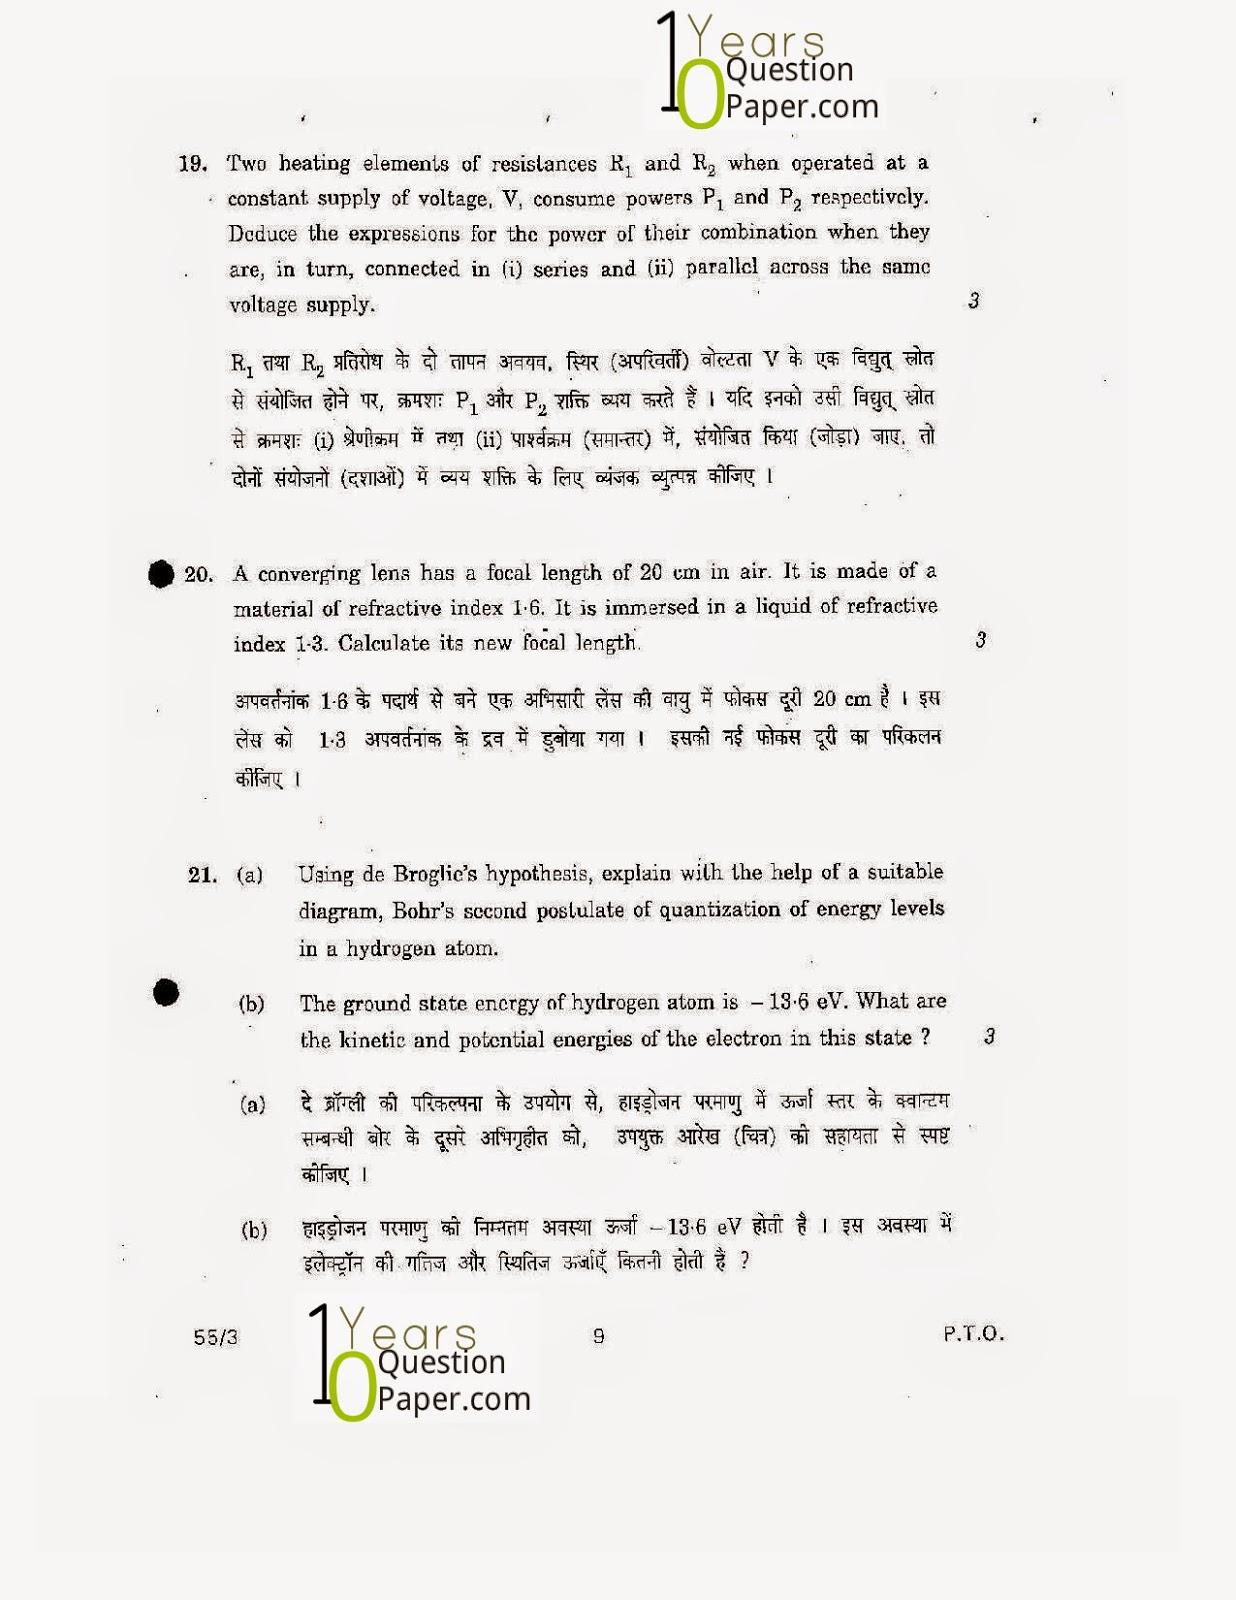 cbse class 12th 2011 Physics question paper